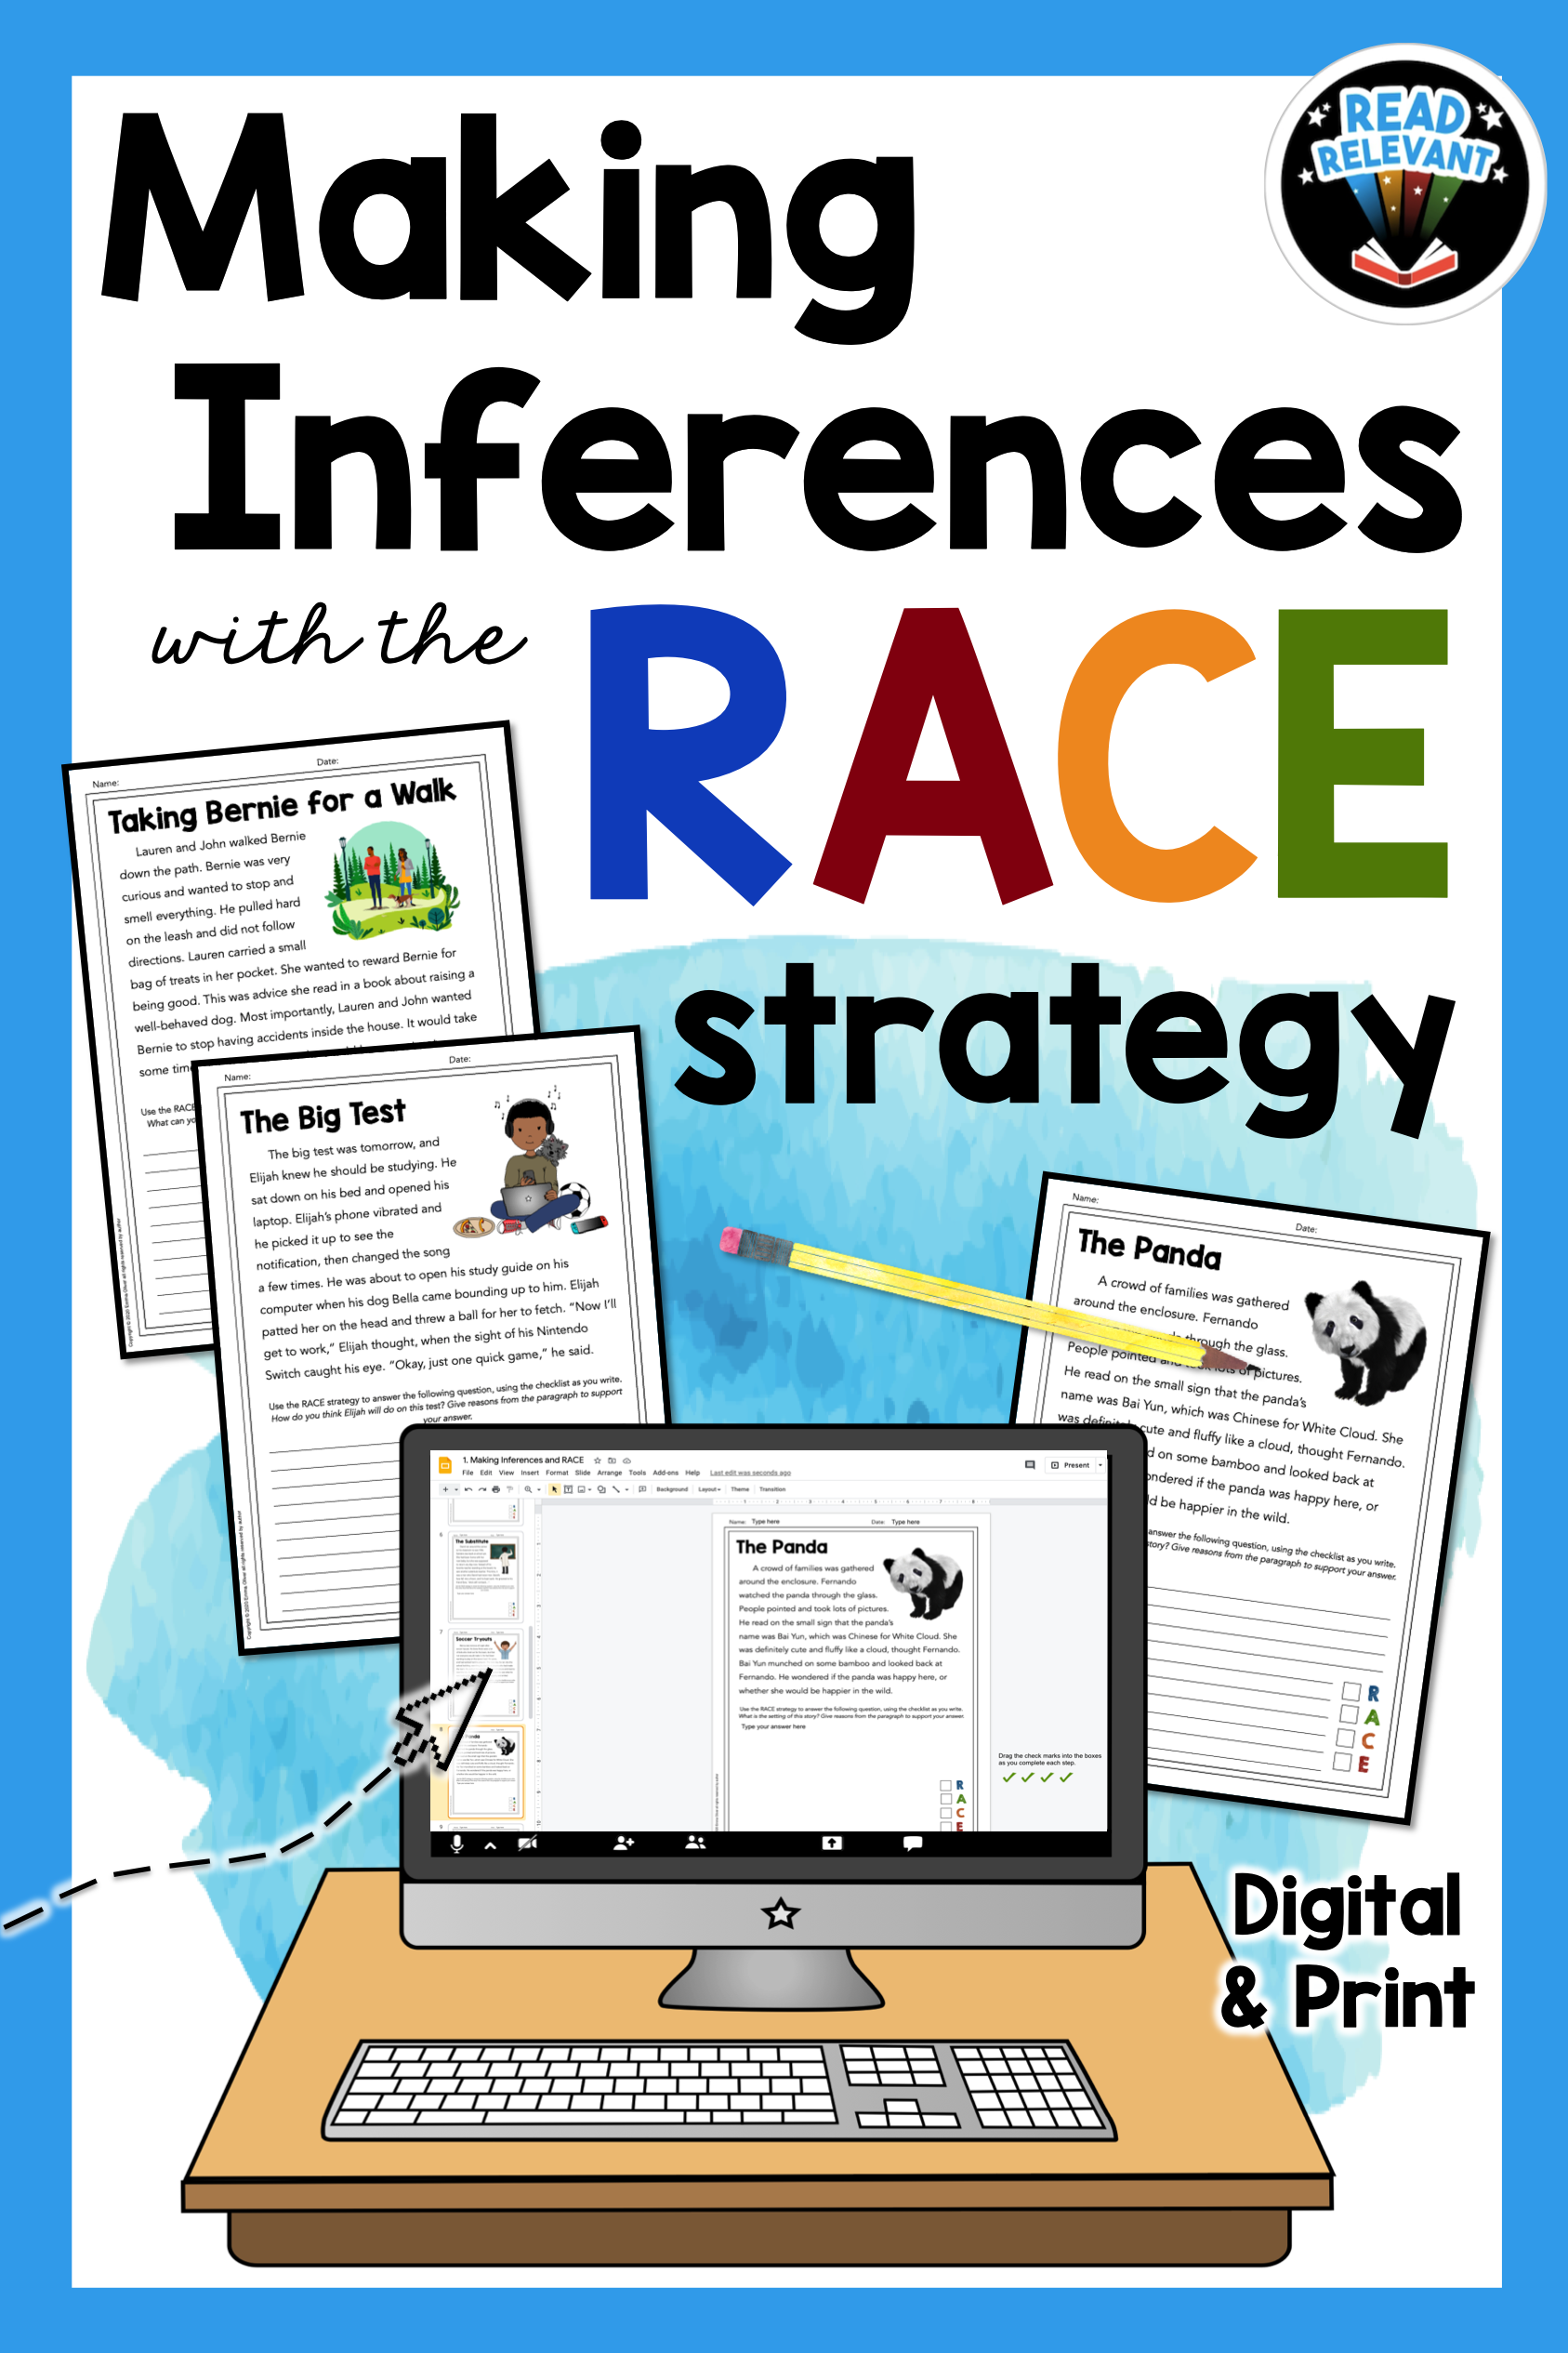 Making Inferences Reading Passages And Questions For The Race Writing Strategy In 2021 Reading Passages Races Writing Strategy Race Writing [ 2531 x 1687 Pixel ]